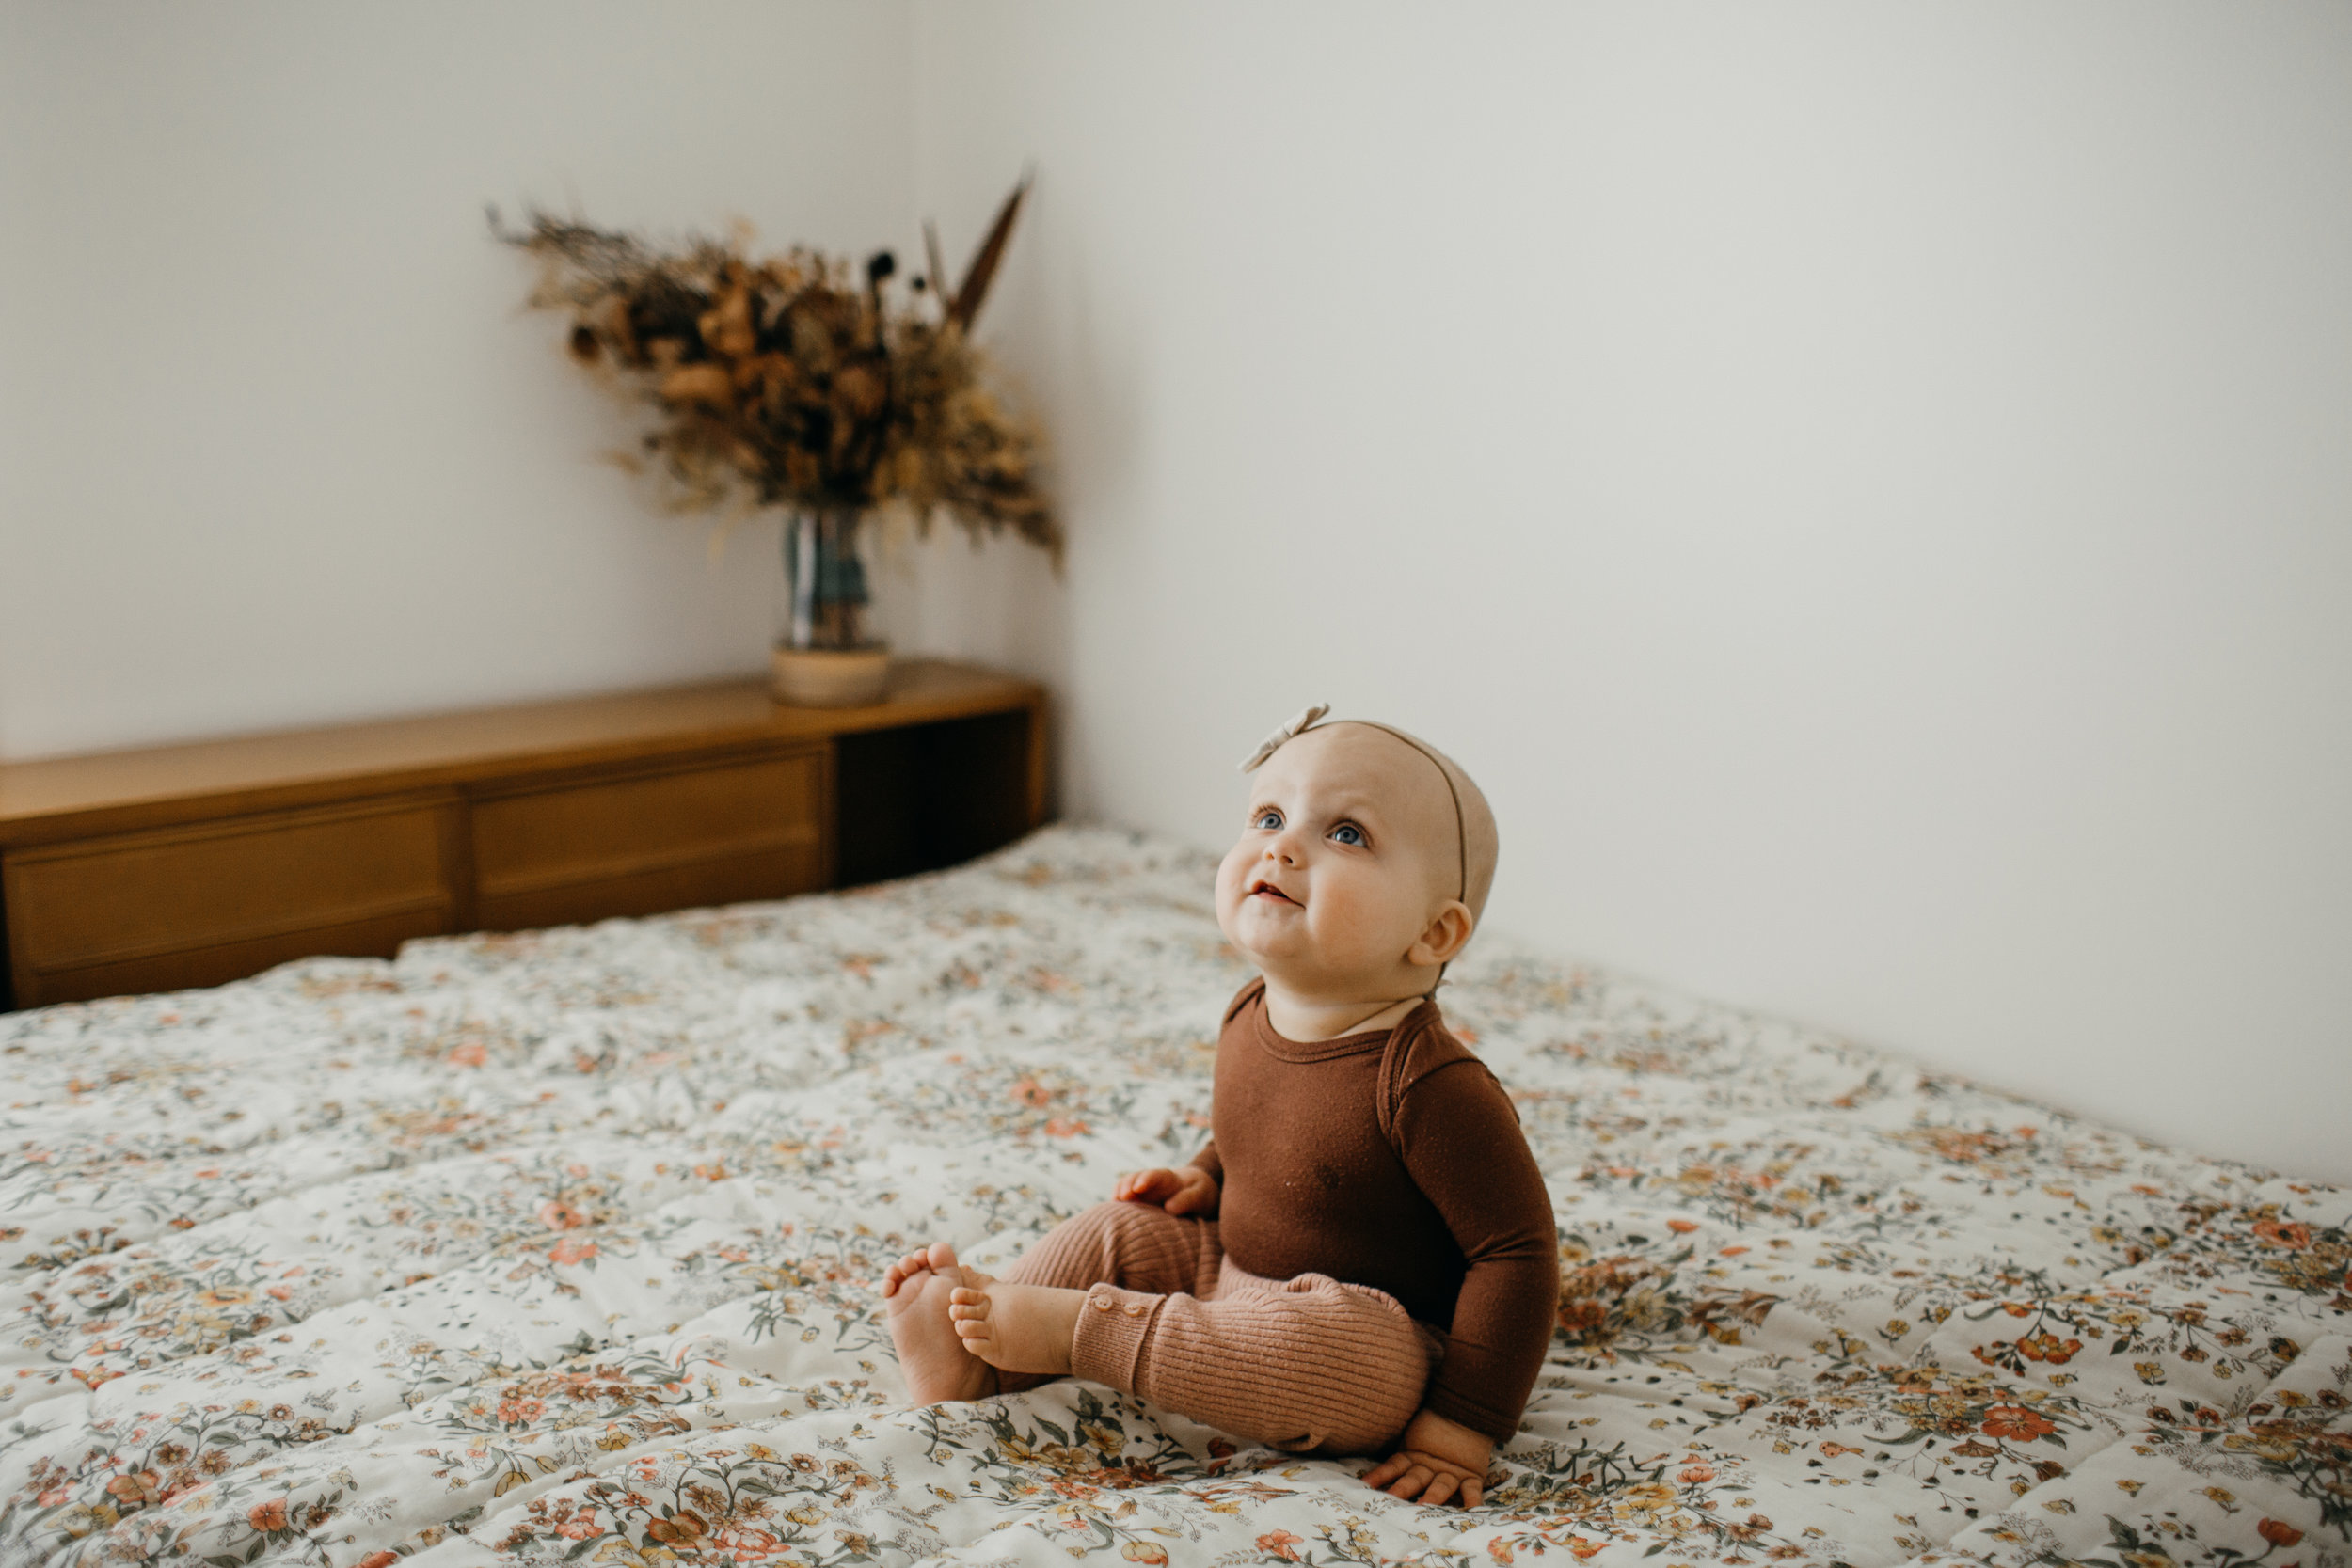 andrie_10months-8.jpg